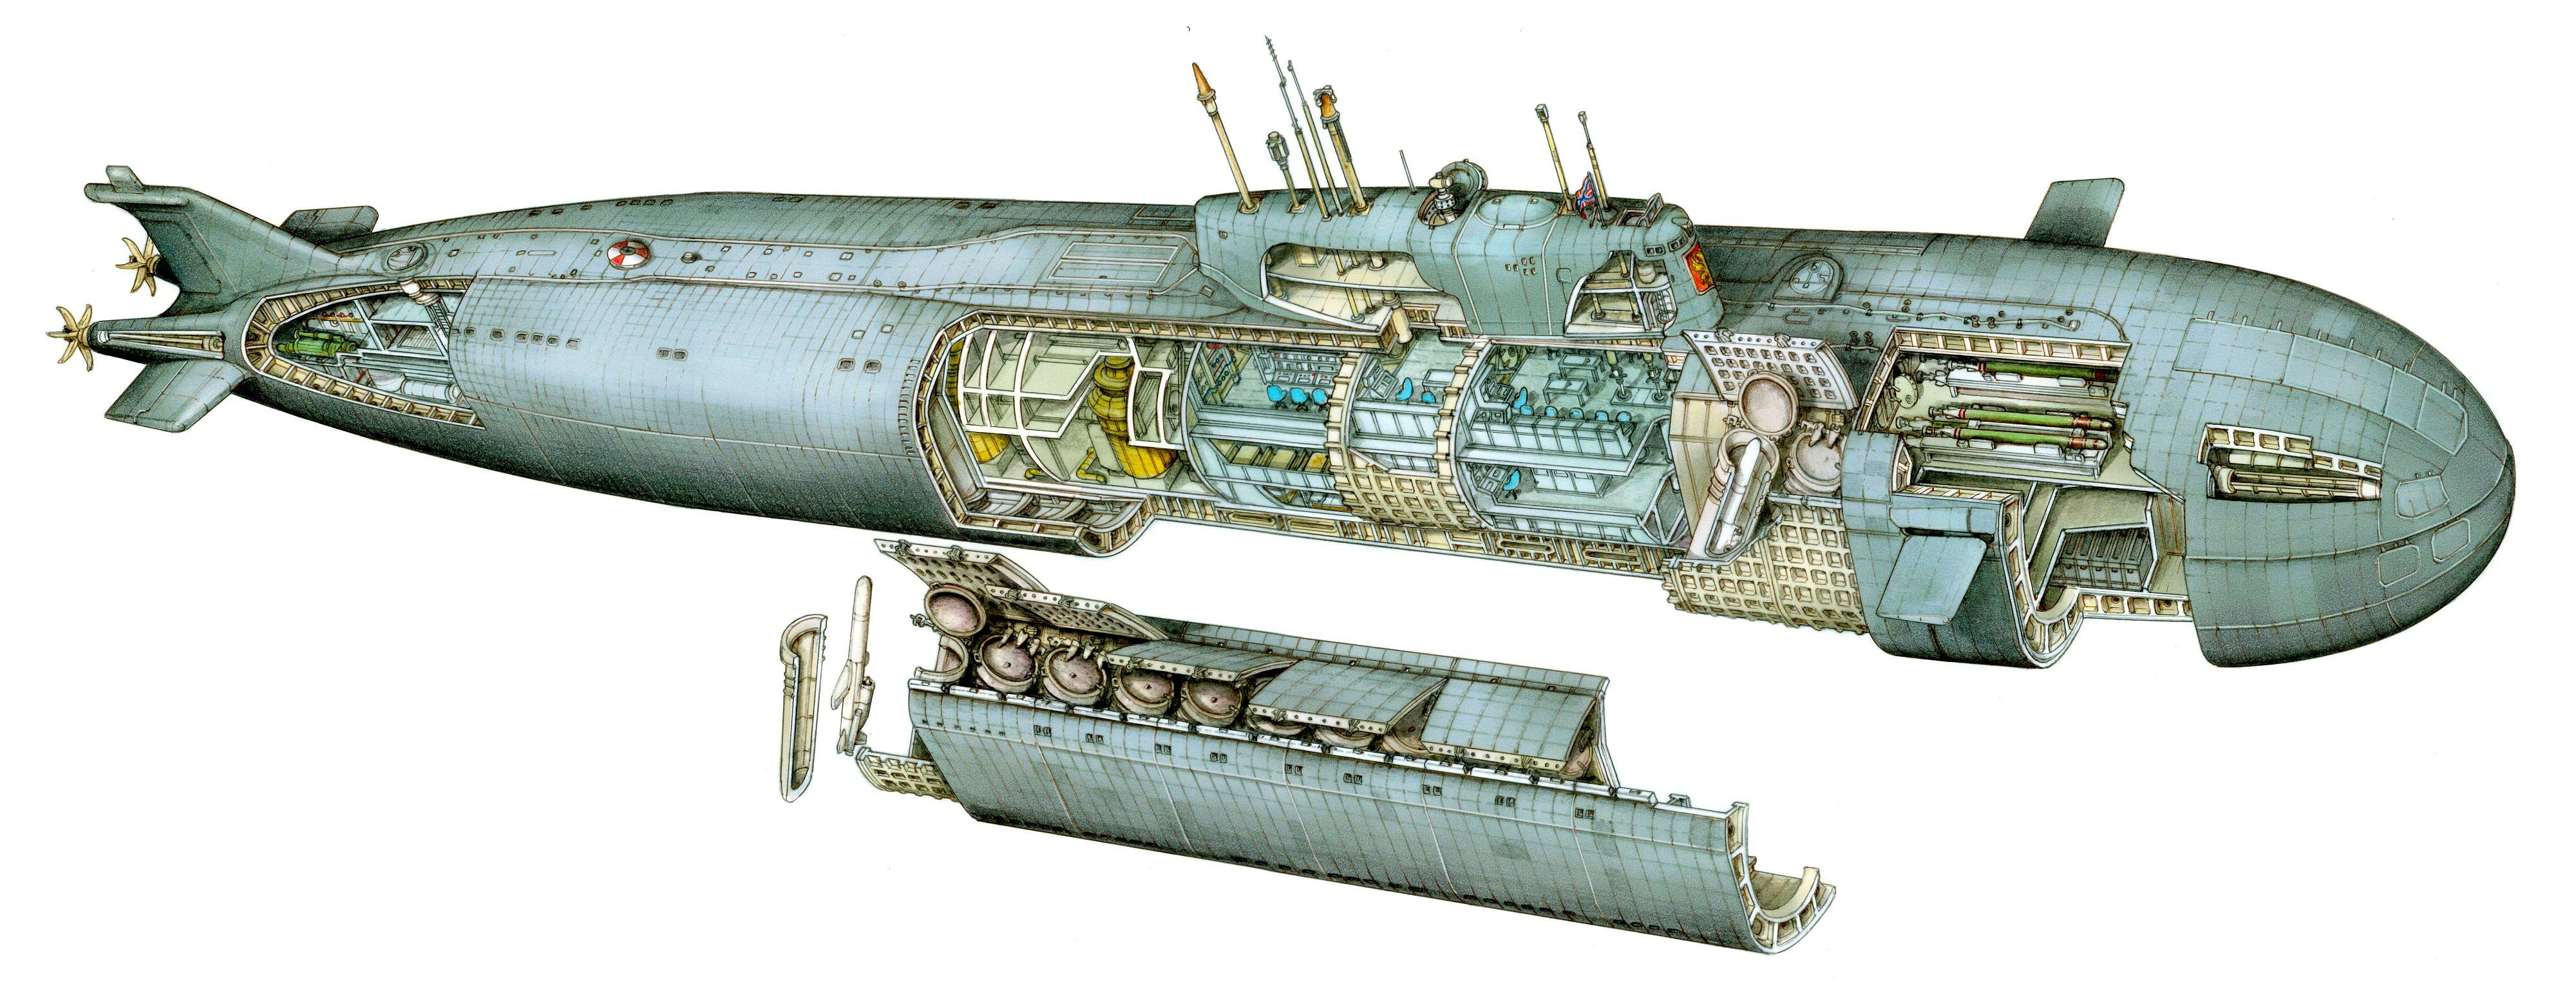 russian submarine kursk k 141 cutaway drawing in high quality continental aircraft engine diagram aircraft engine block diagram